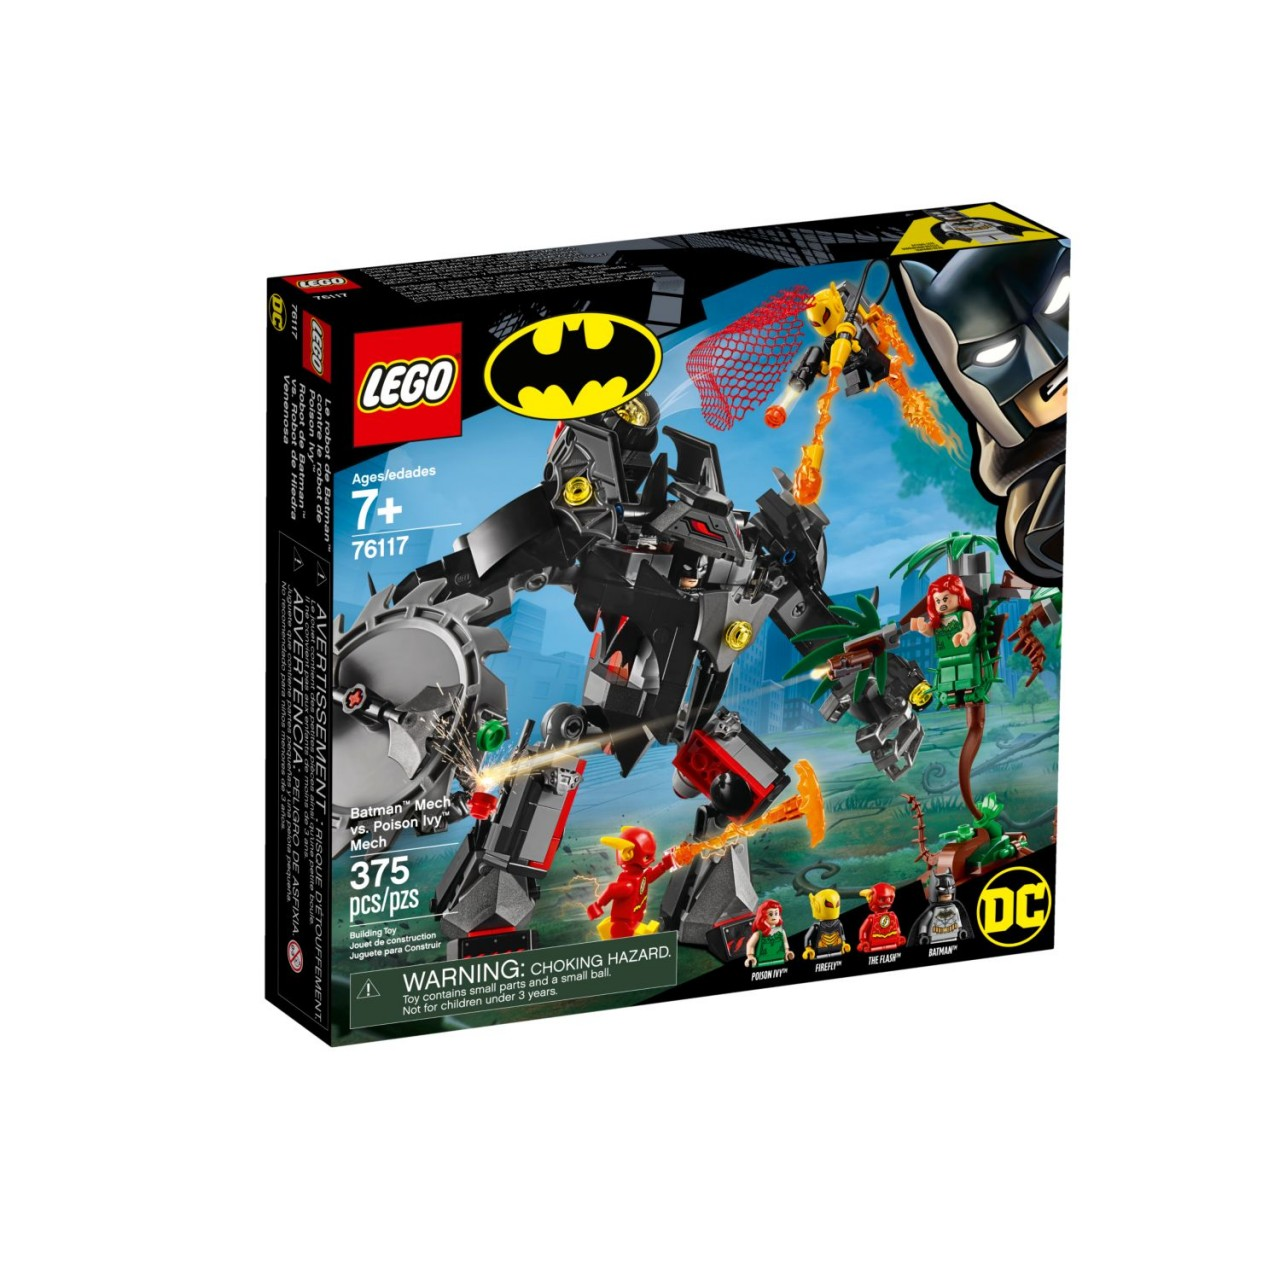 LEGO DC COMICS SUPER HEROES 76117 Batman Mech vs. Poison Ivy Mech